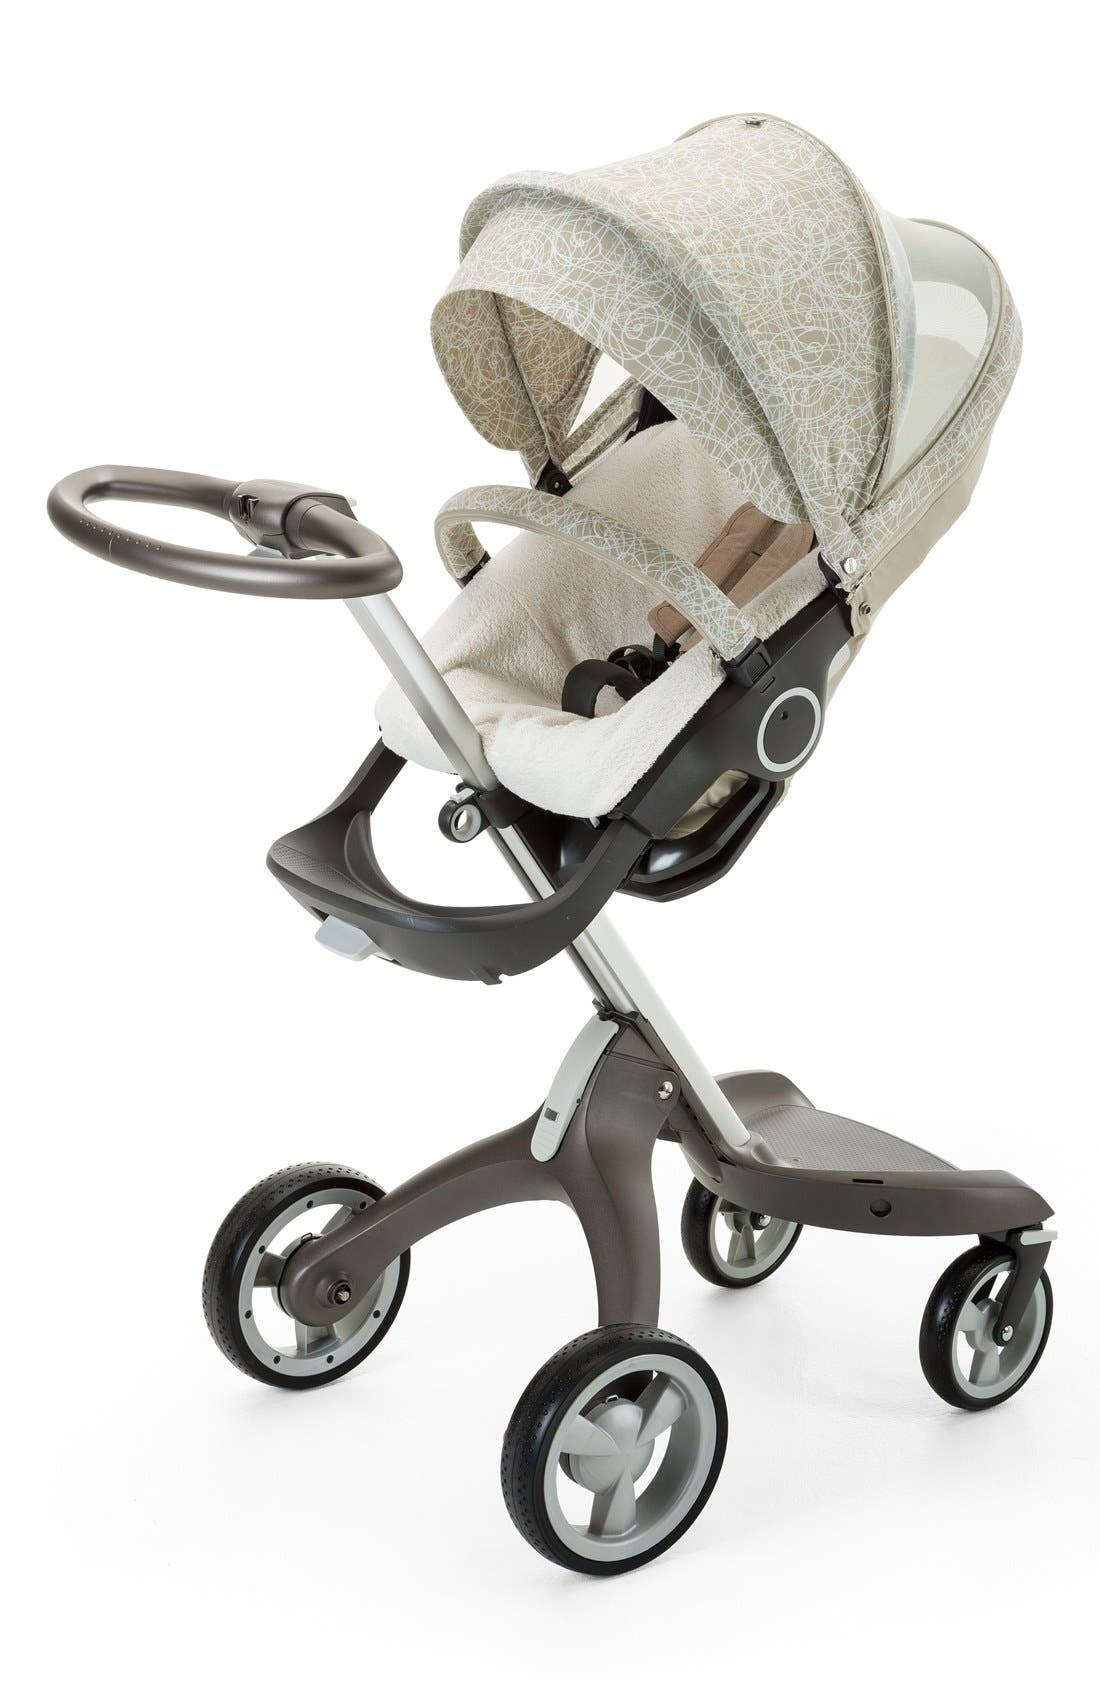 Alternate Image 1 Selected - Stokke Baby 'Xplory® Stroller Summer Kit' Shade Set